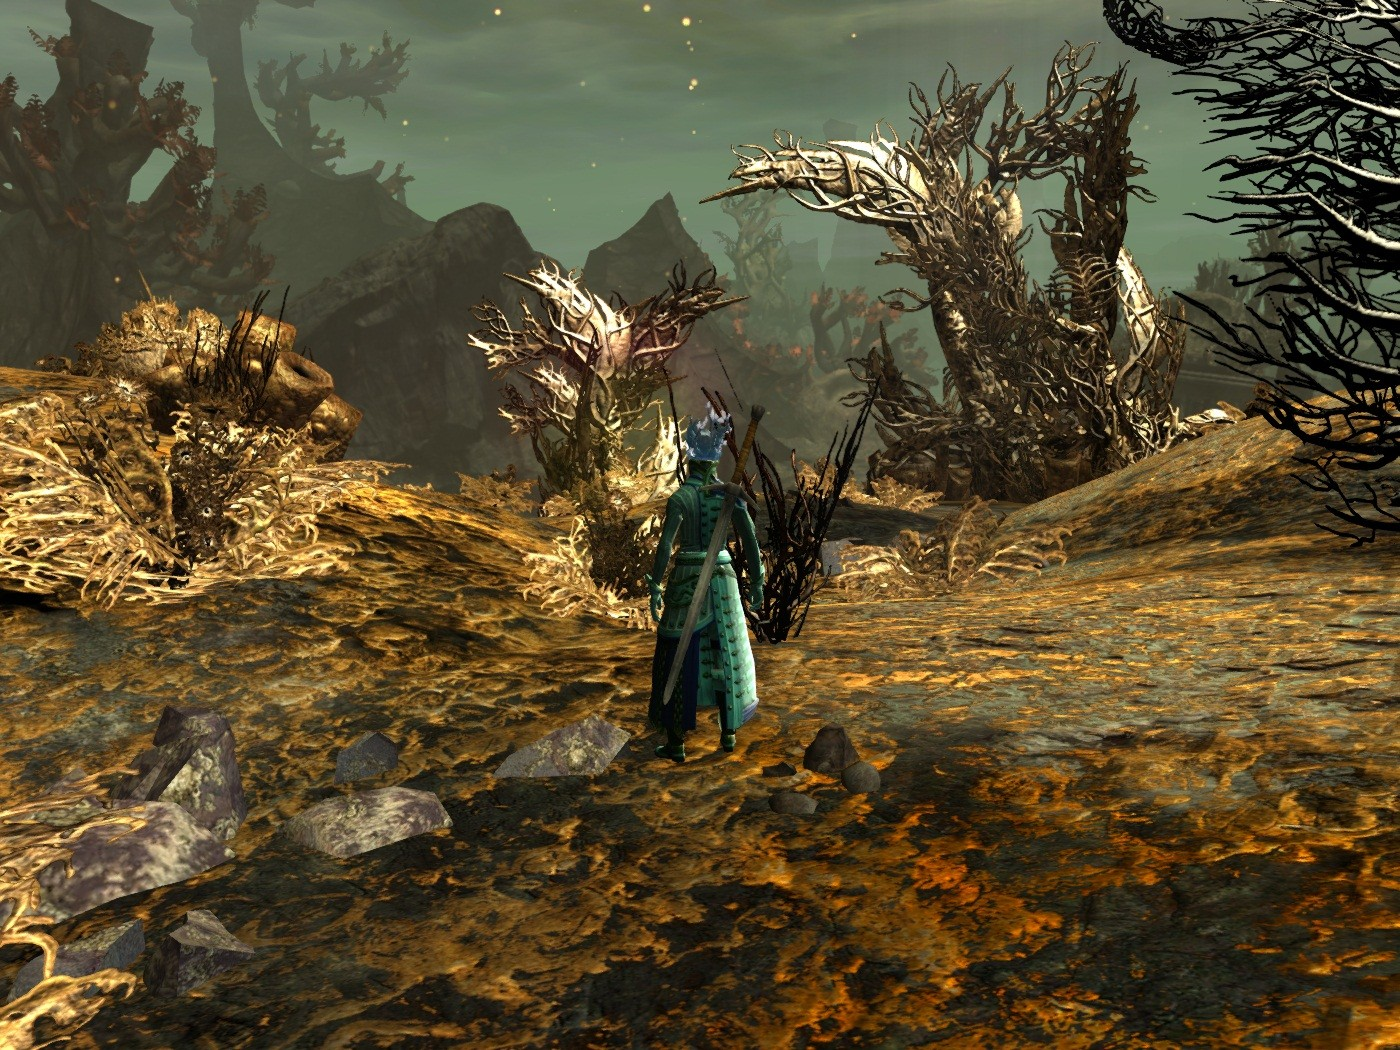 Guild Wars 2 - I hav to say Orr so far has been an amazing looking zone.